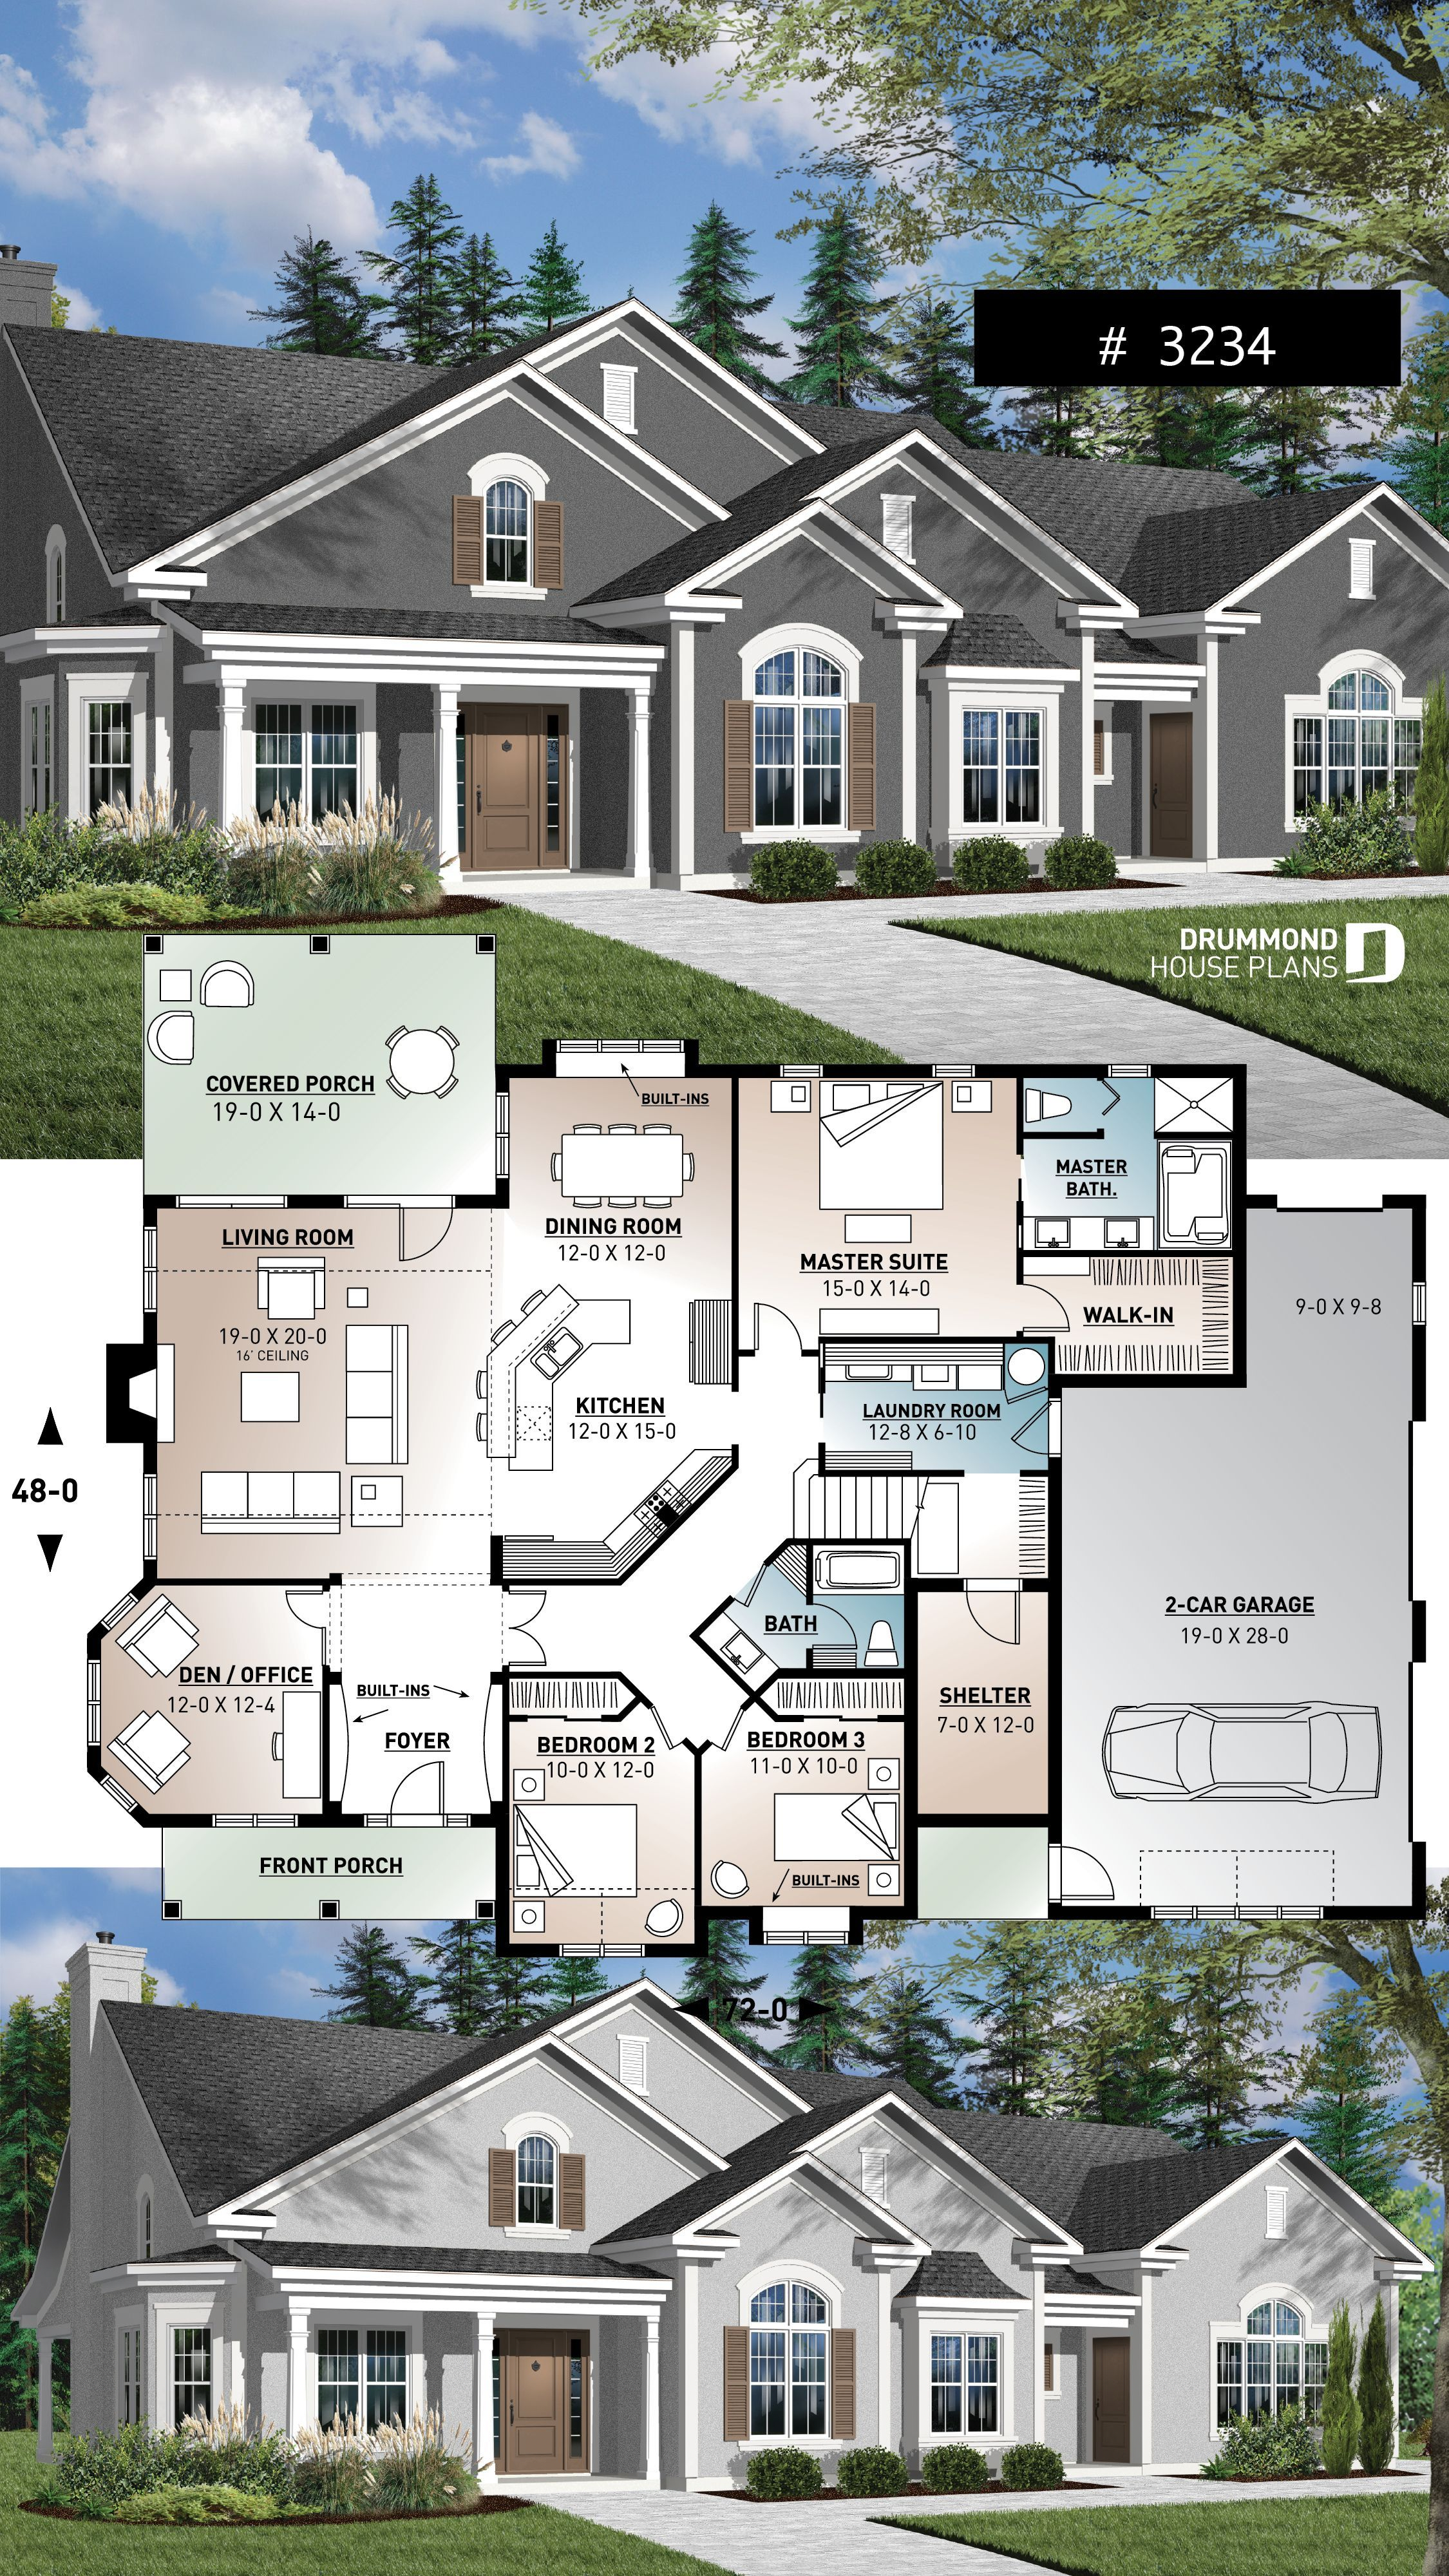 3 To 4 Bedroom Ranch Home Plan Split Bedrooms Large Master Suite 2 Car Side Entry Garage Large F In 2020 Family House Plans Craftsman House Plans Ranch House Plans